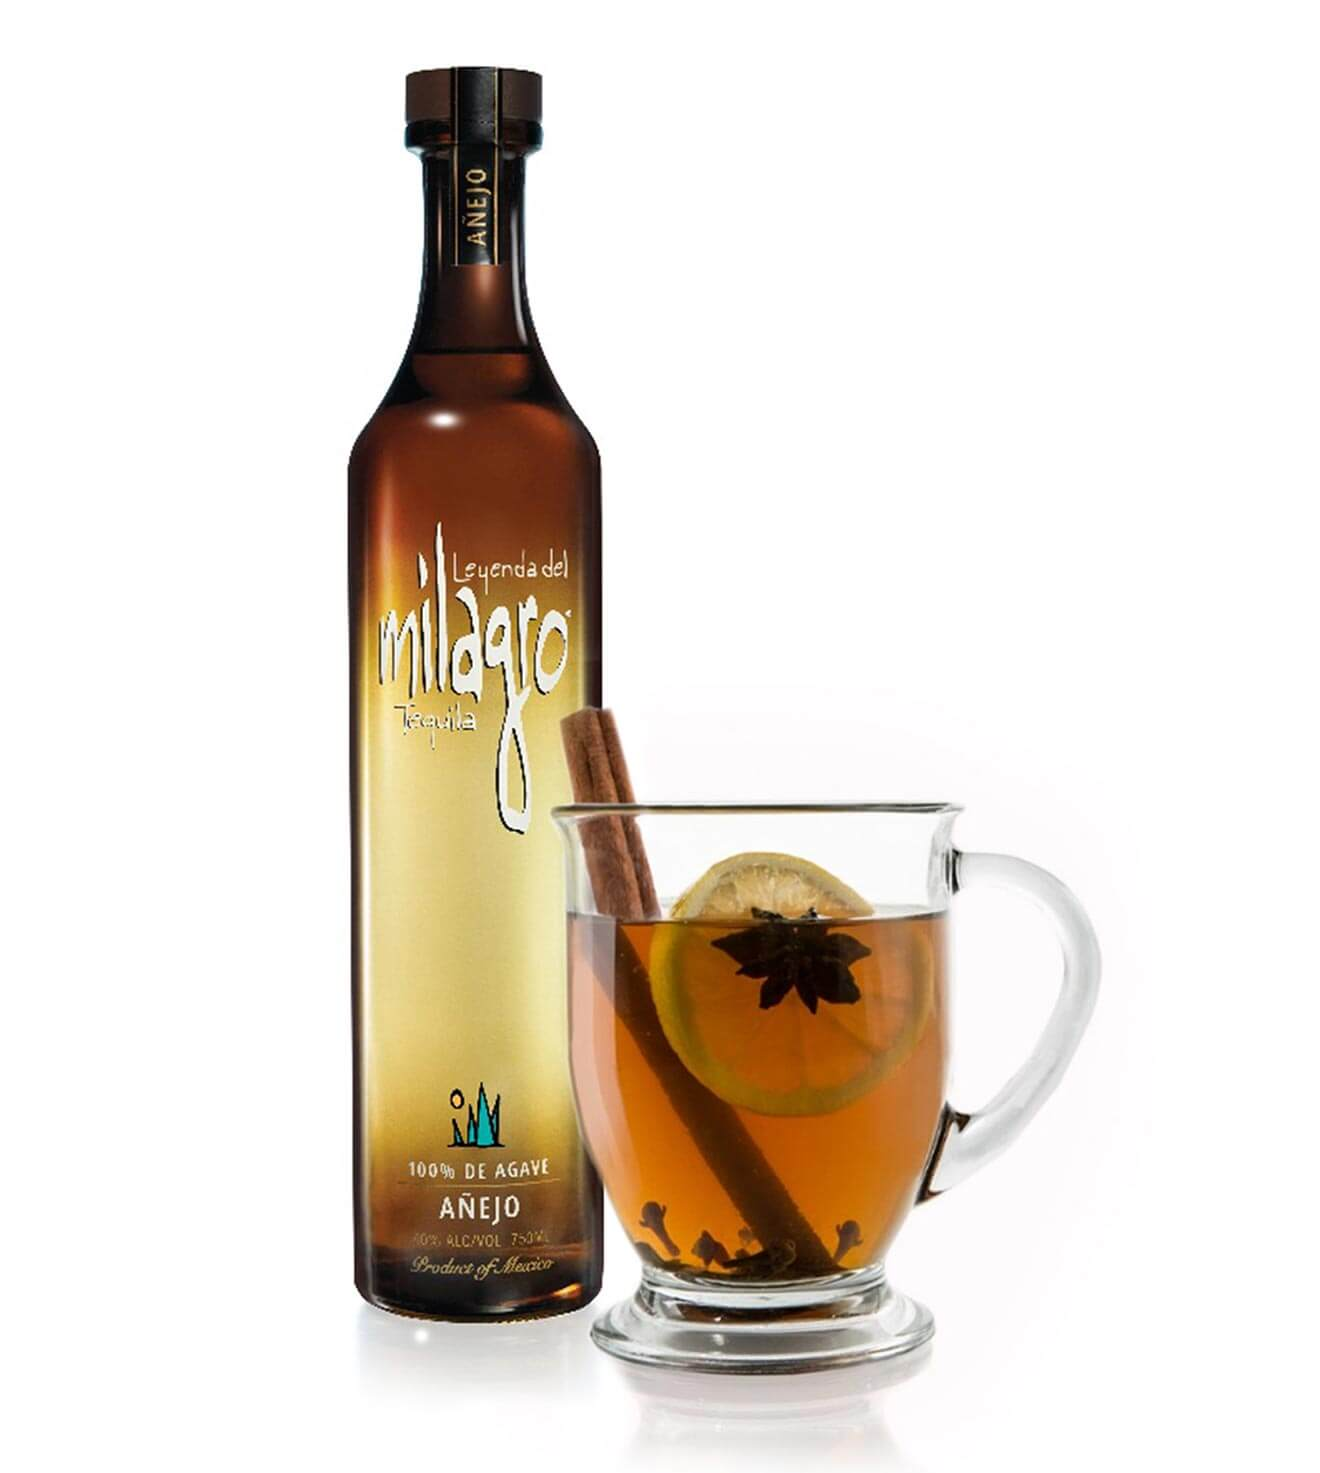 Milagro Hot Toddy cocktail with bottle